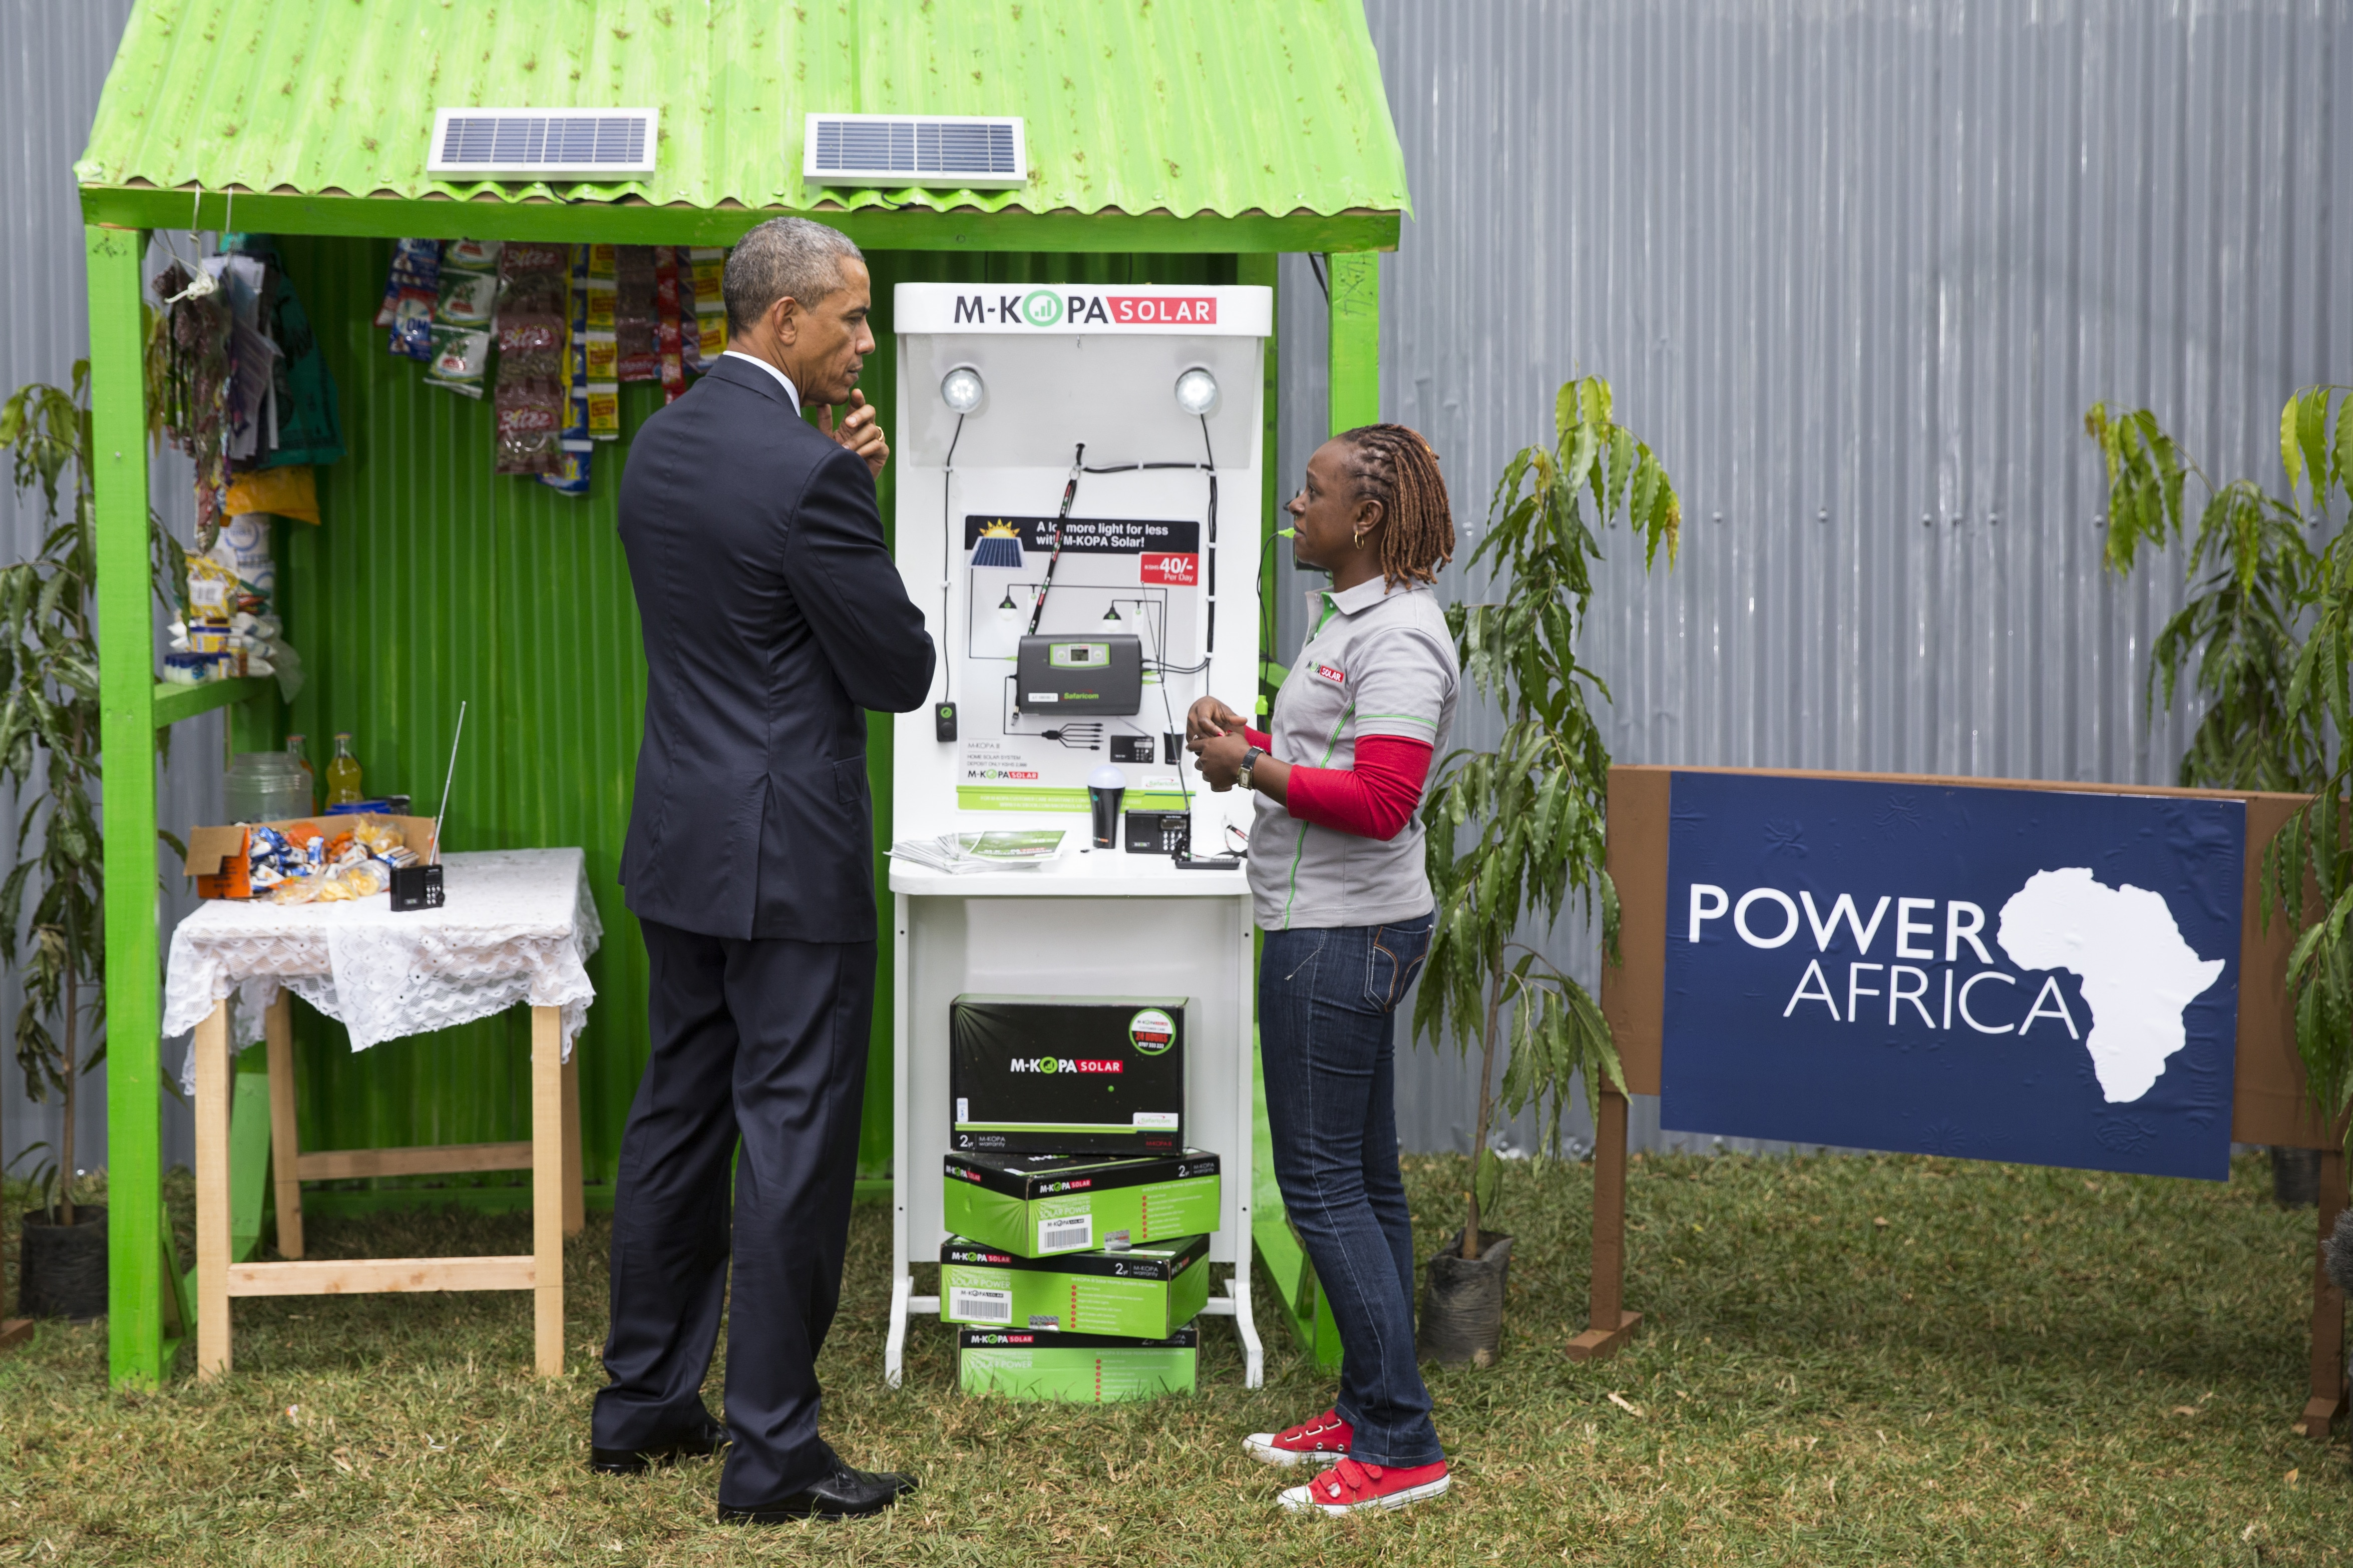 President Obama and a young woman at a solar power exhibit booth (© AP Images)